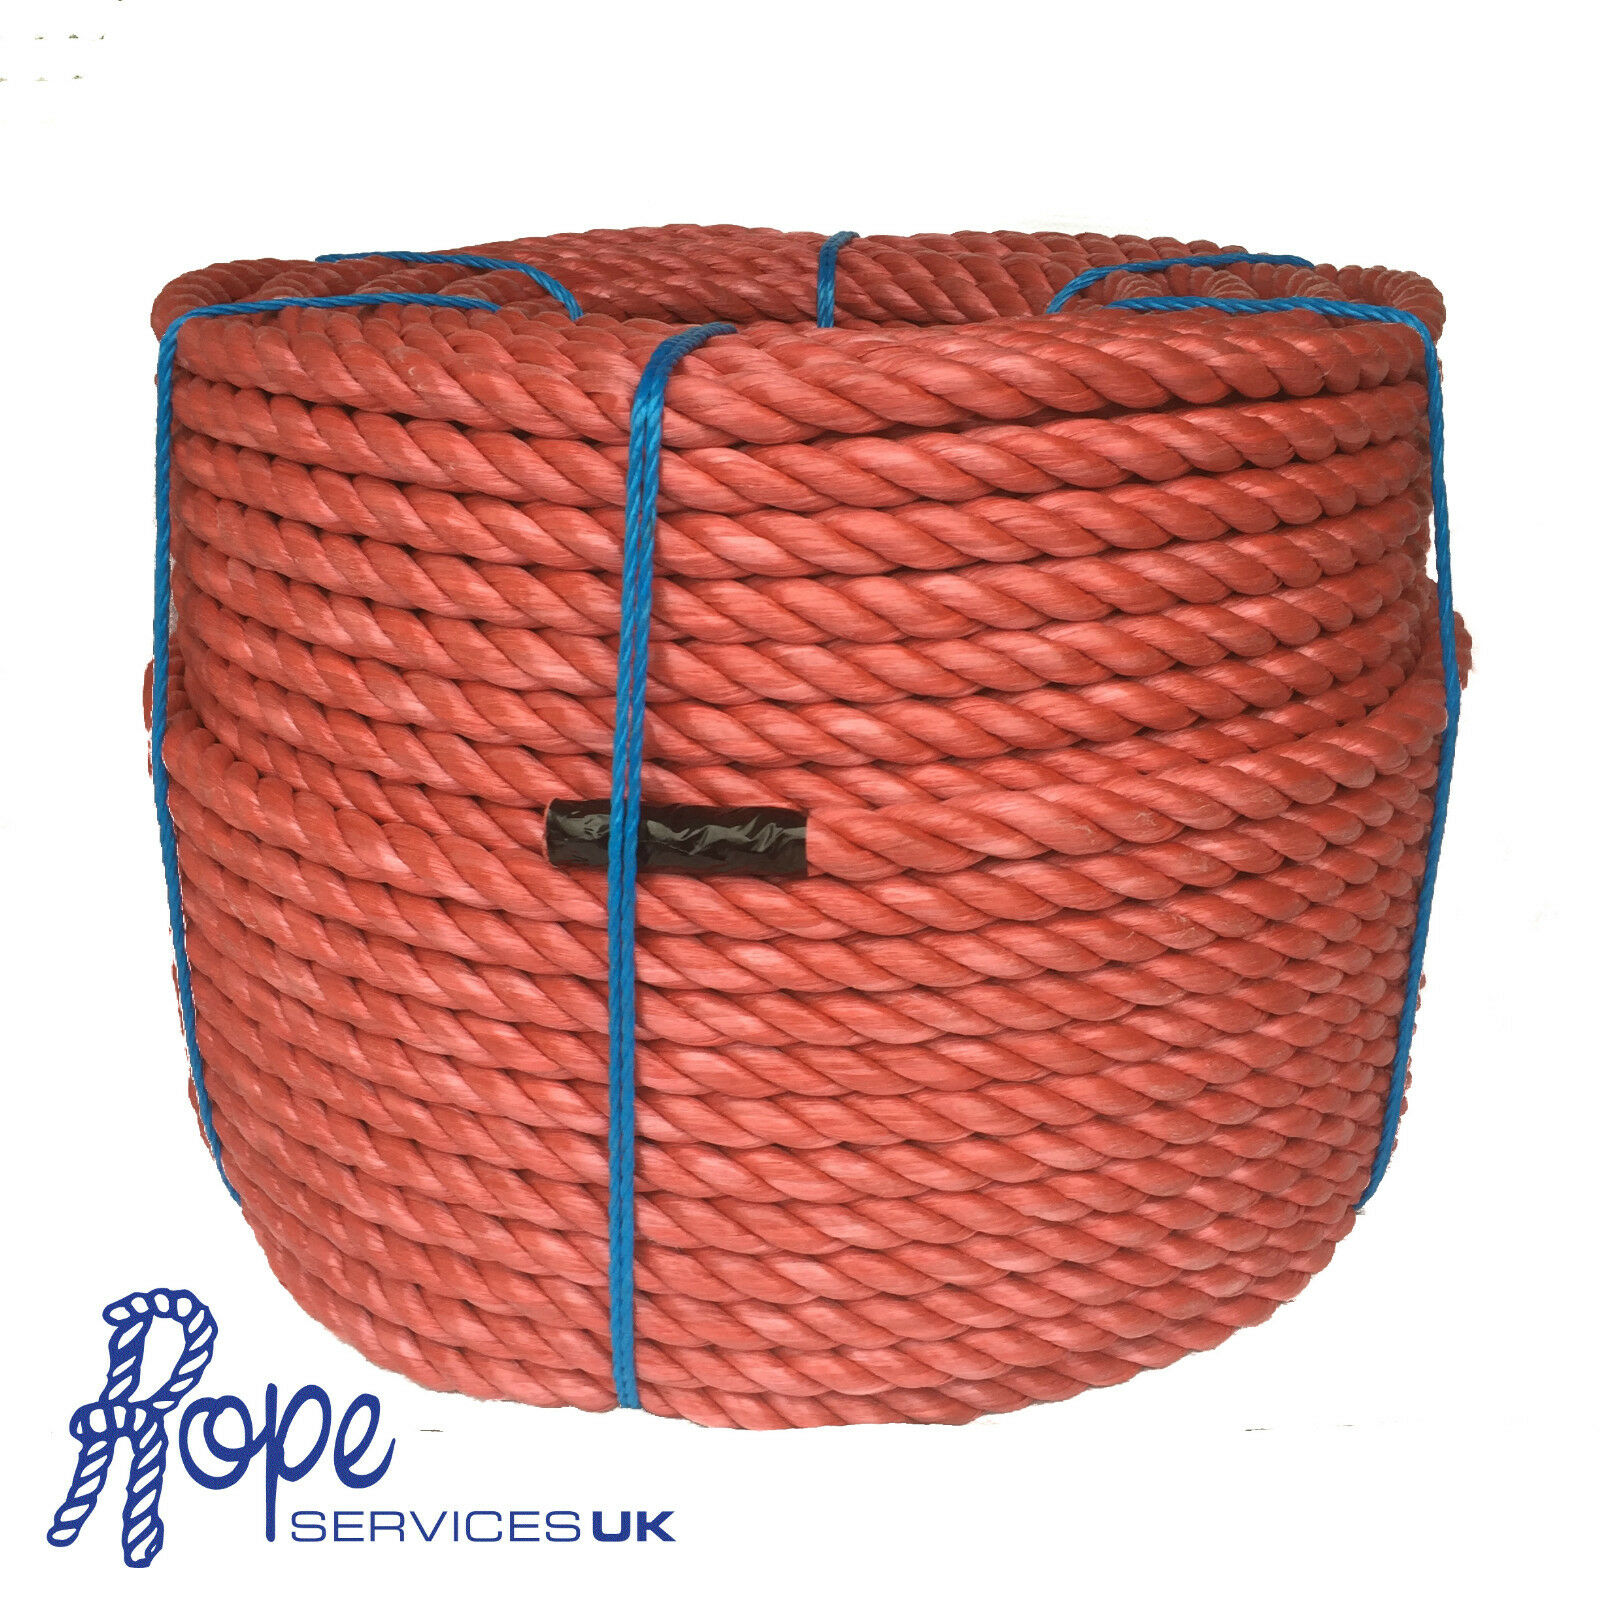 28mm x 50 mts Red Poly Rope Coils, Polyrope, Polypropylene, Agriculture, Camping